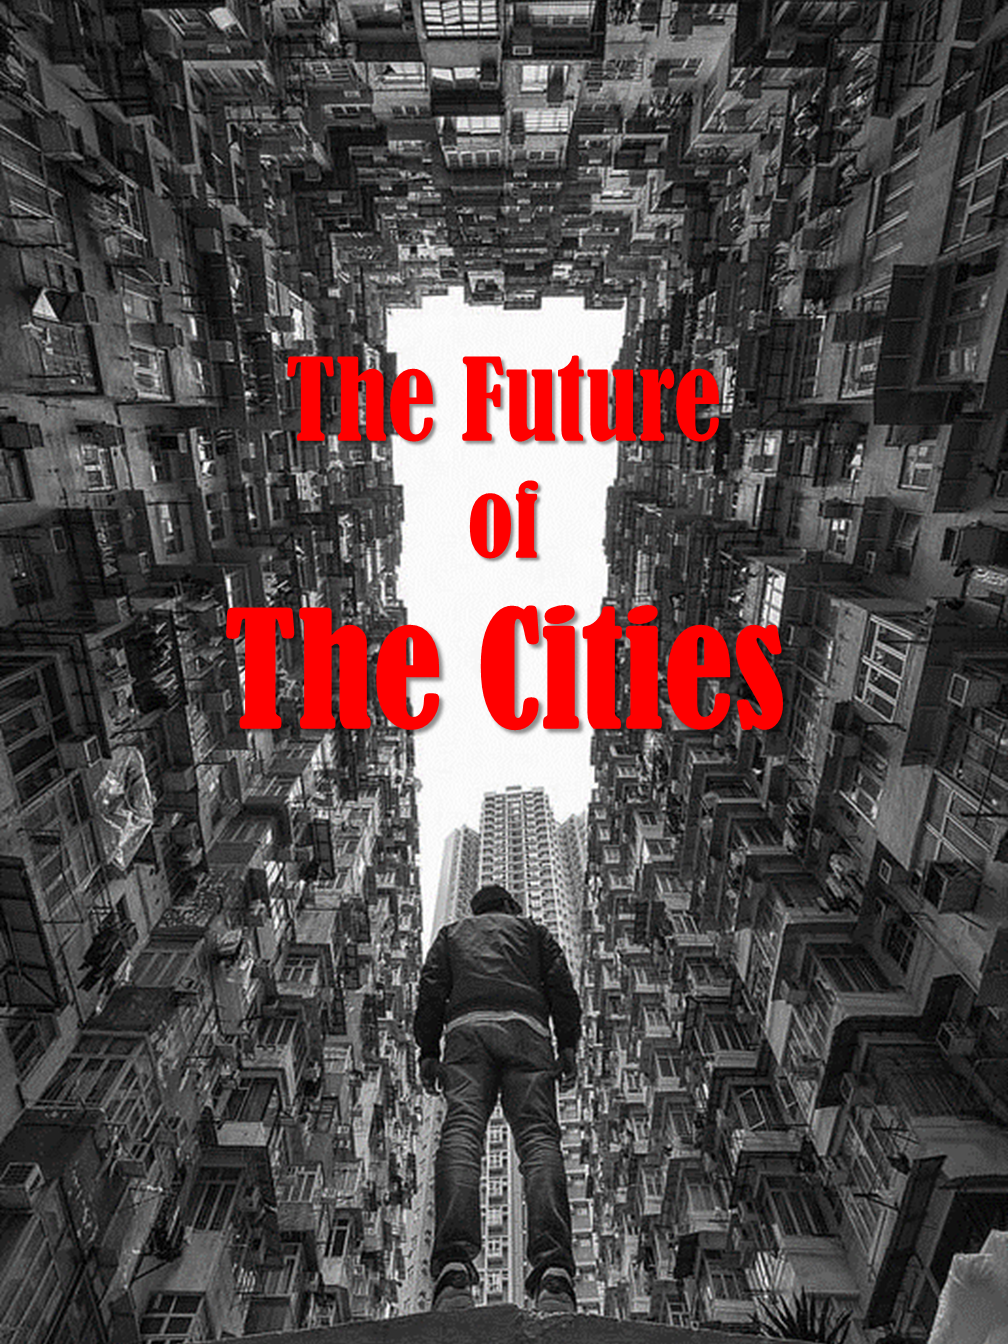 The Future of the Cities